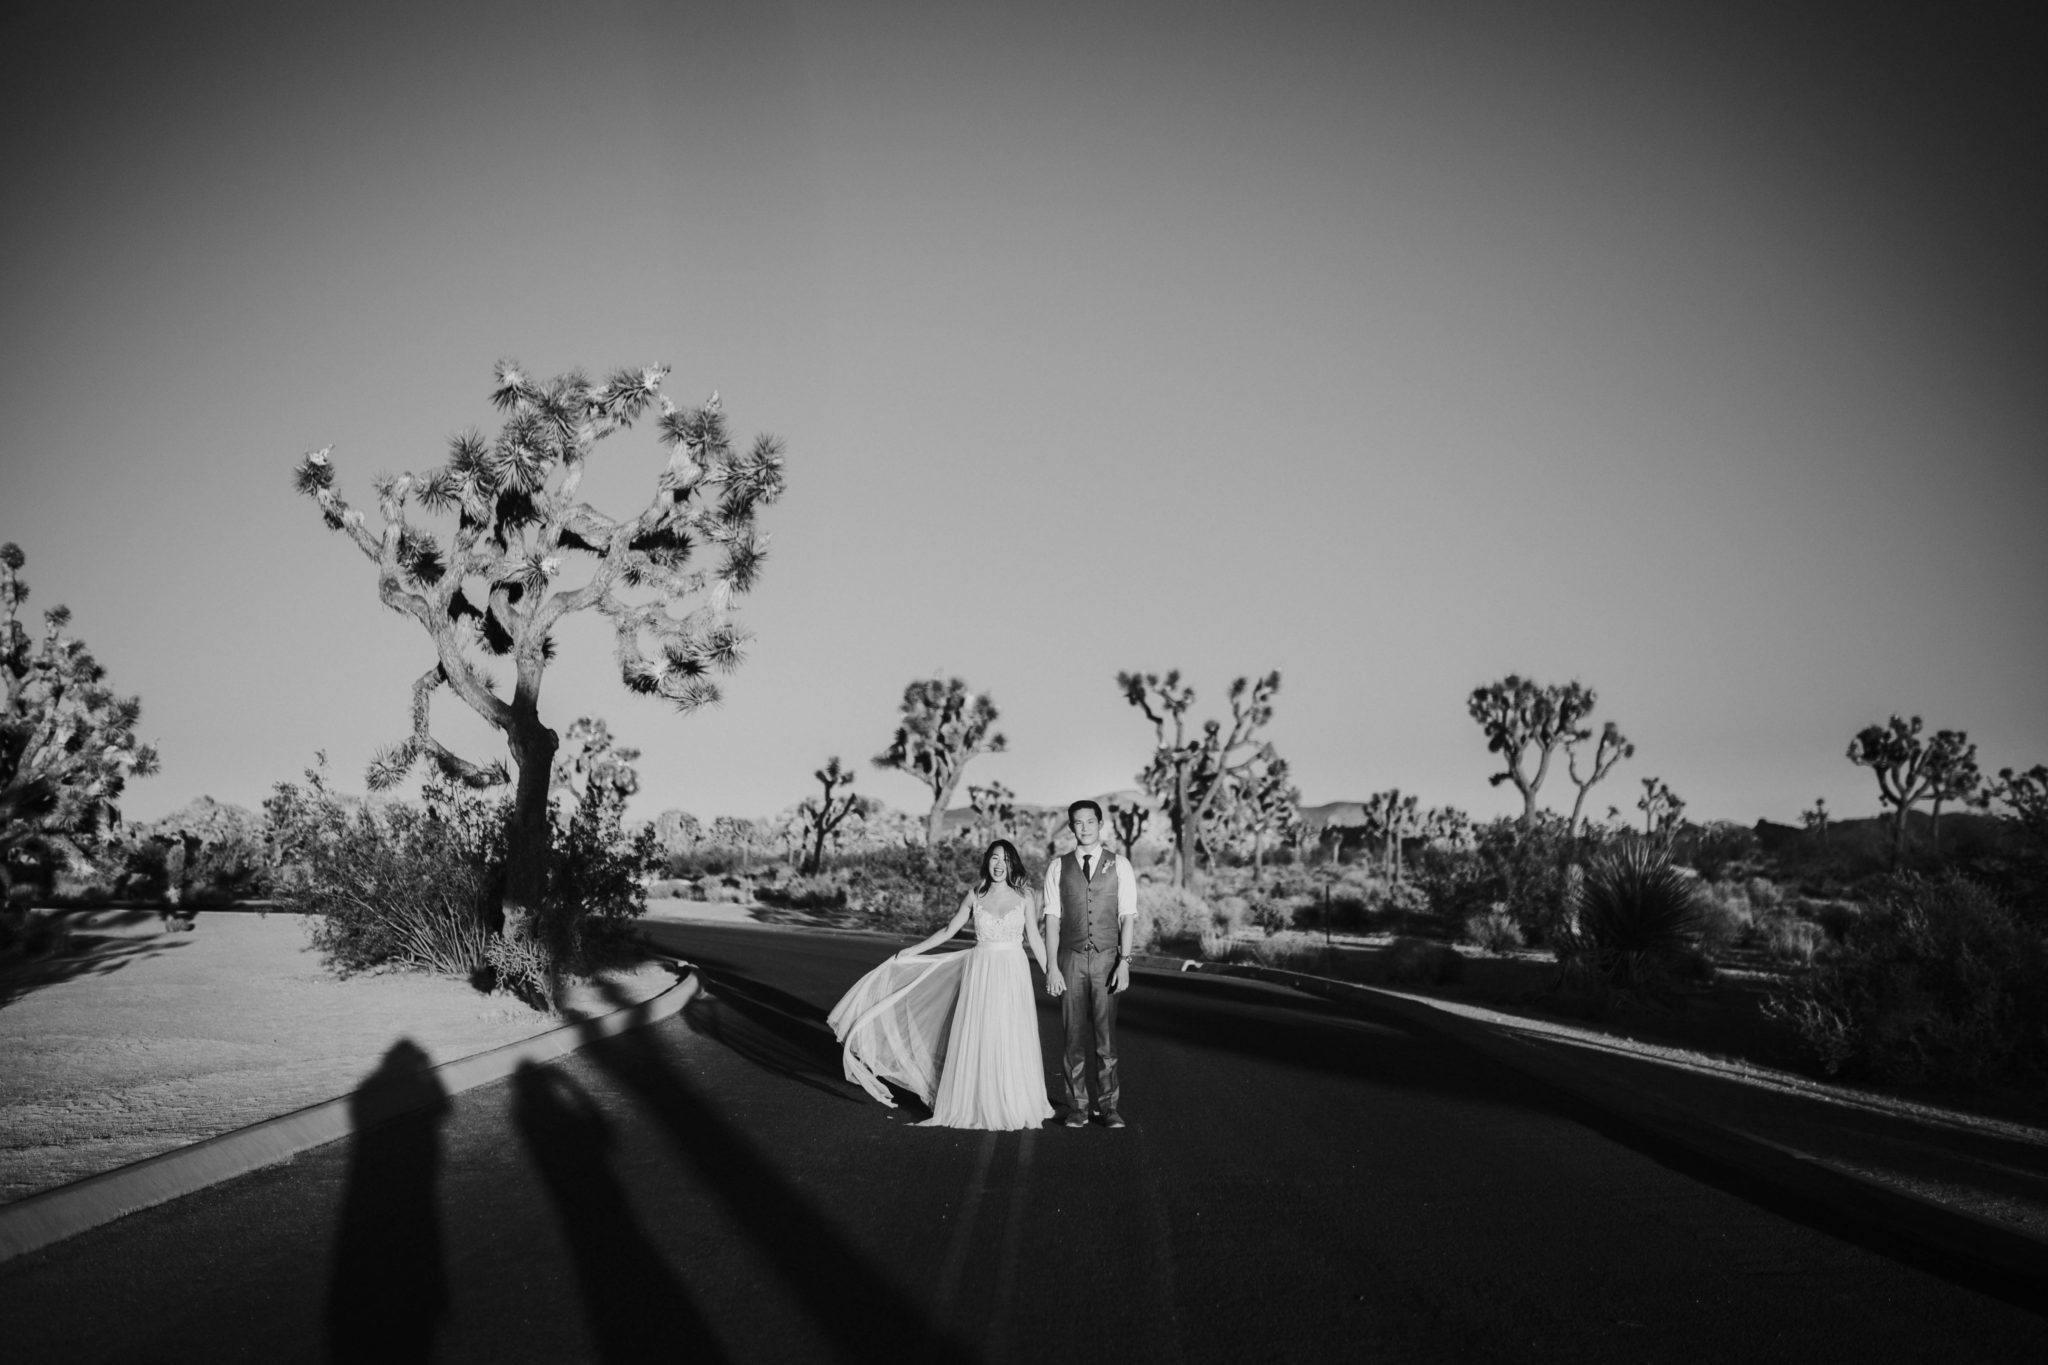 Mandy & Joey Joshua Tree Elopement California Wedding Photographer-226